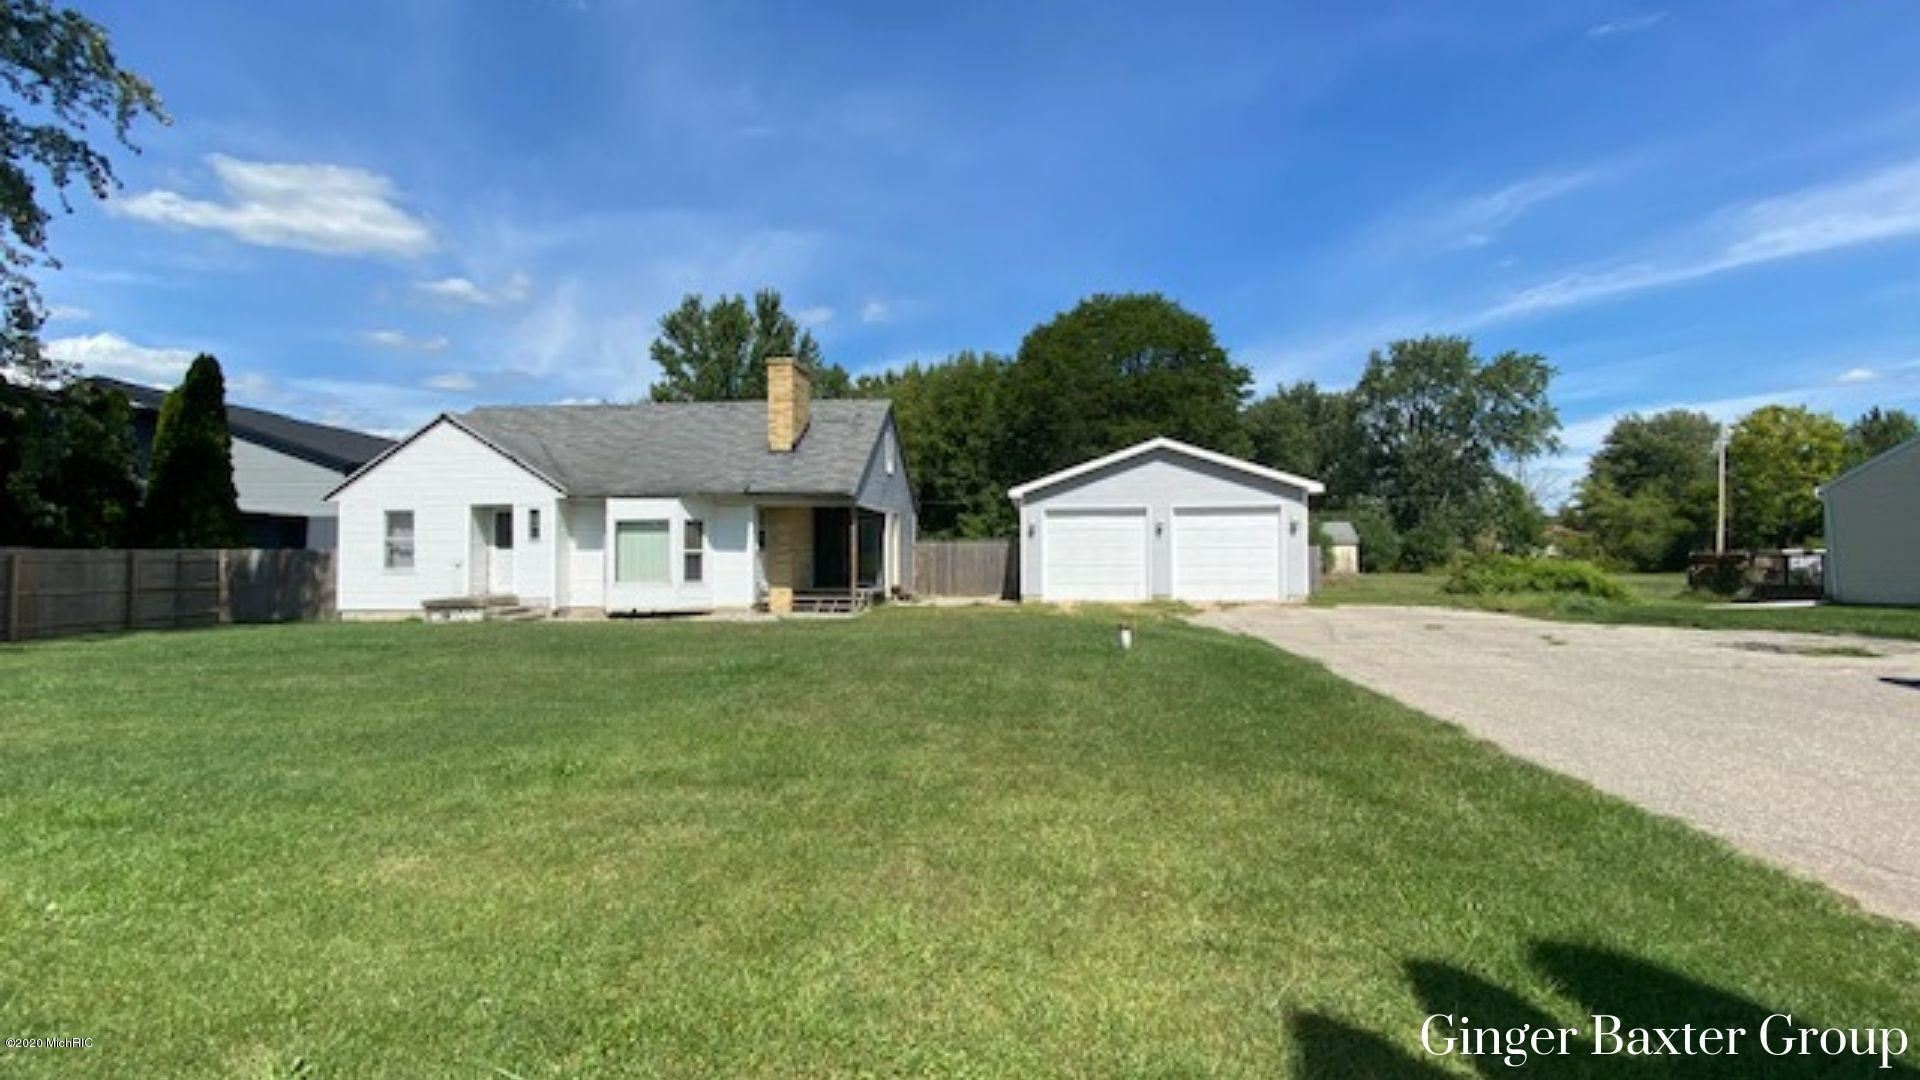 151 Johnson Street, Grand Rapids, MI 49544 - MLS#: 20043268